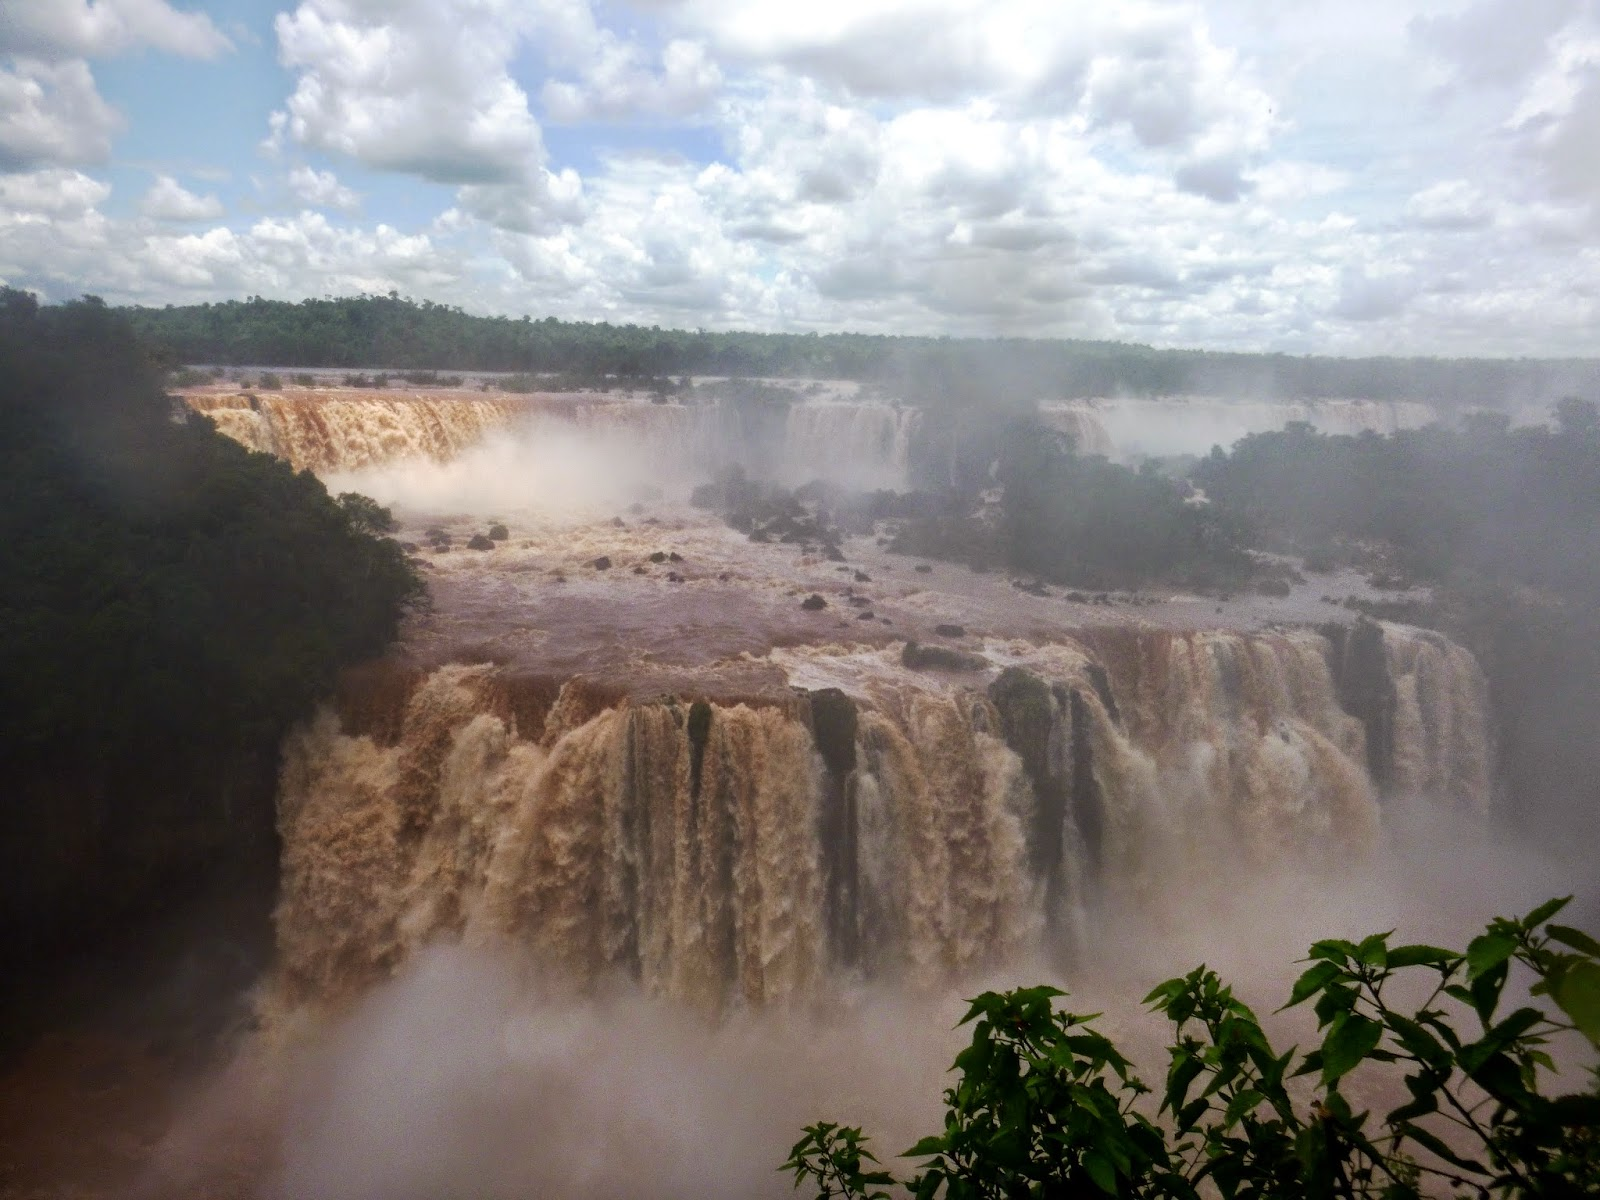 Parque Nacional do Iguaçu - Cataratas do Iguaçu